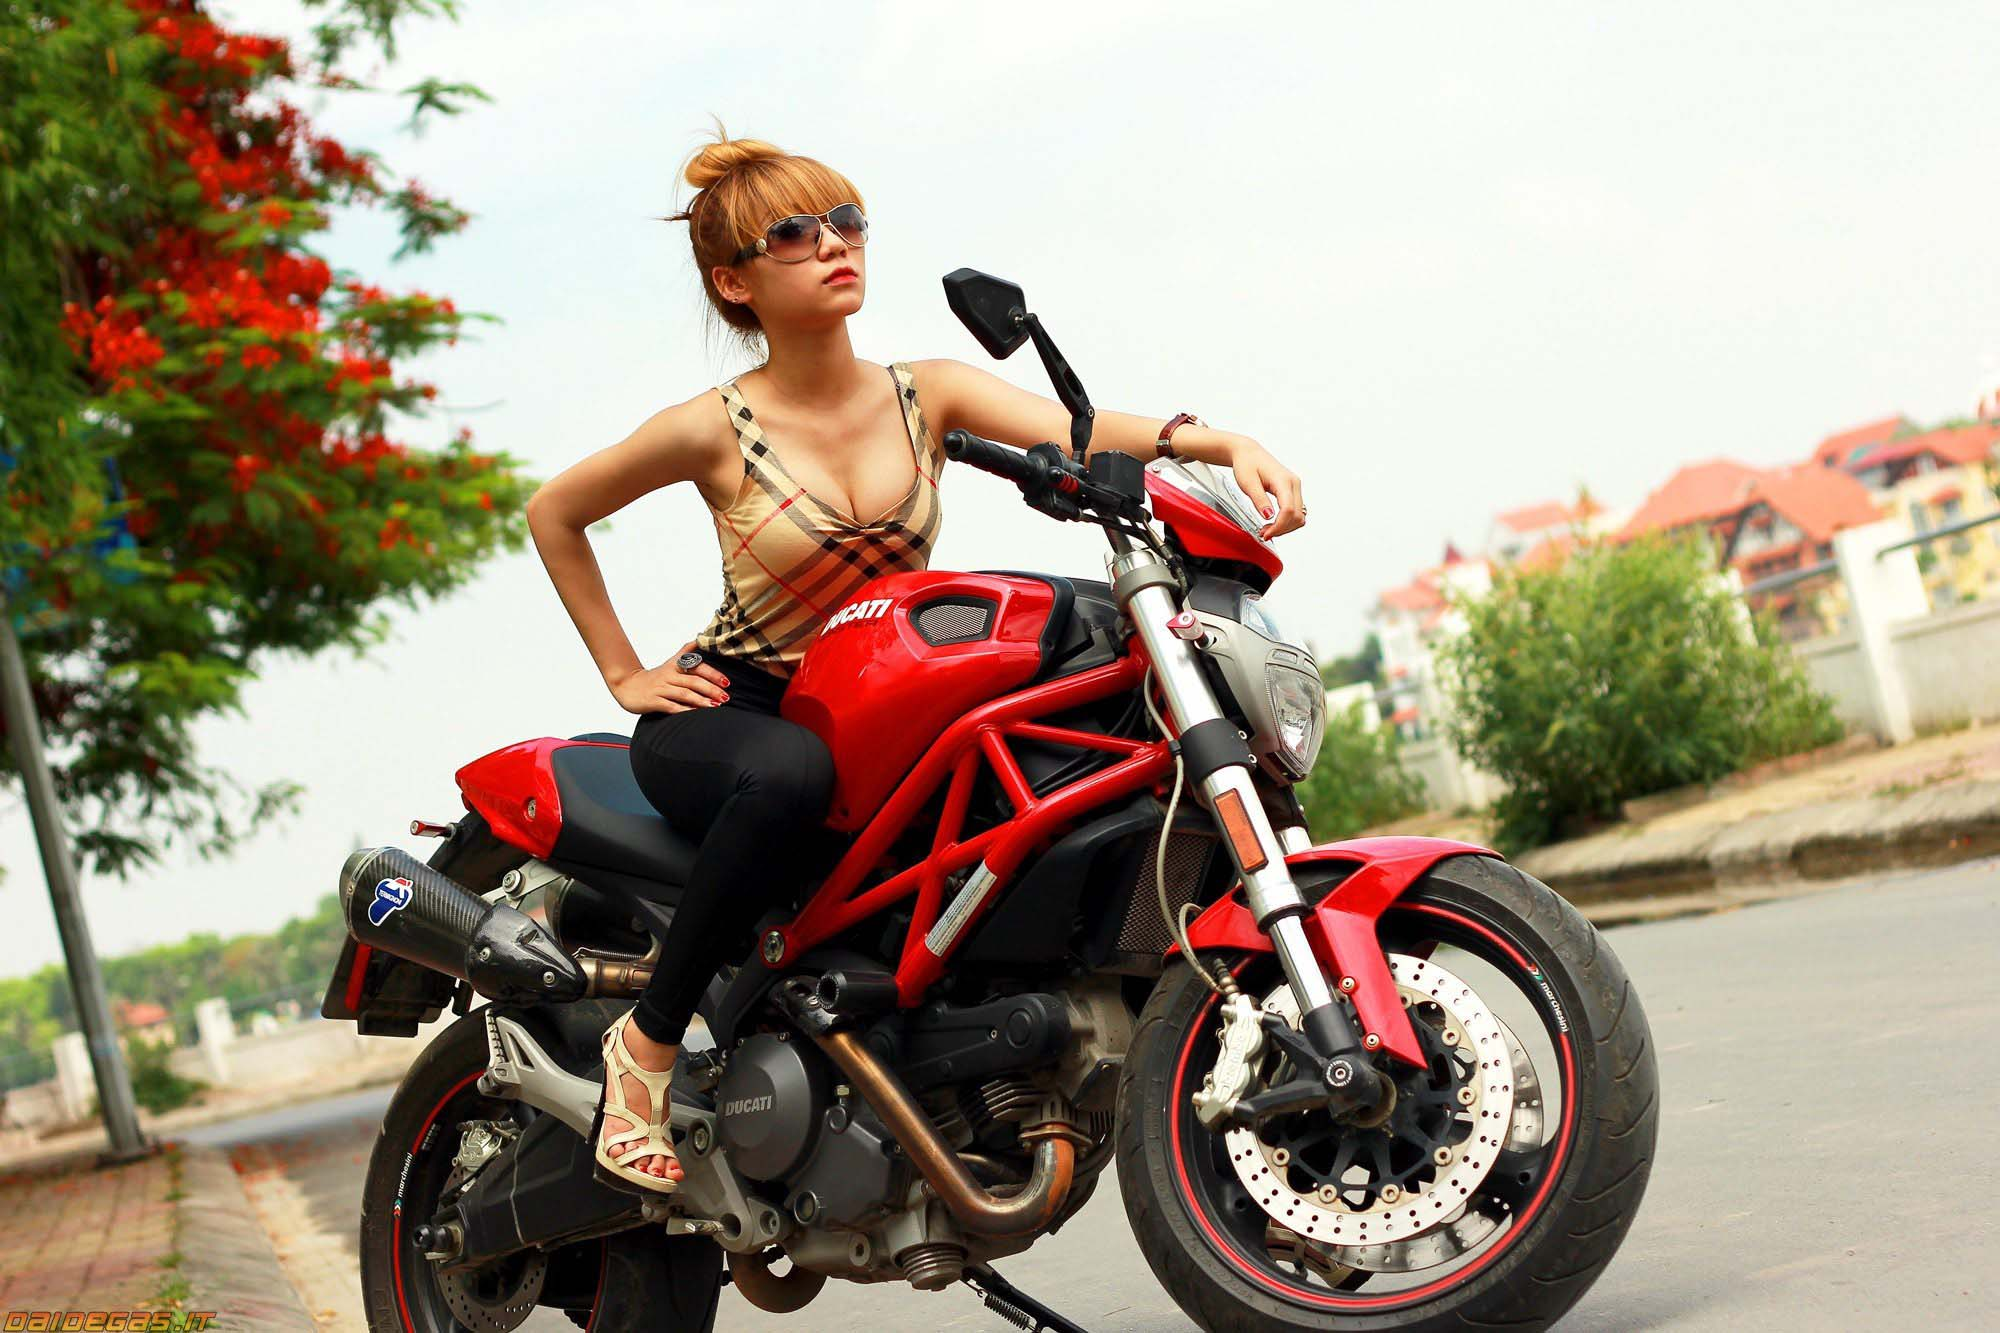 Ducati Monster 696 with girl